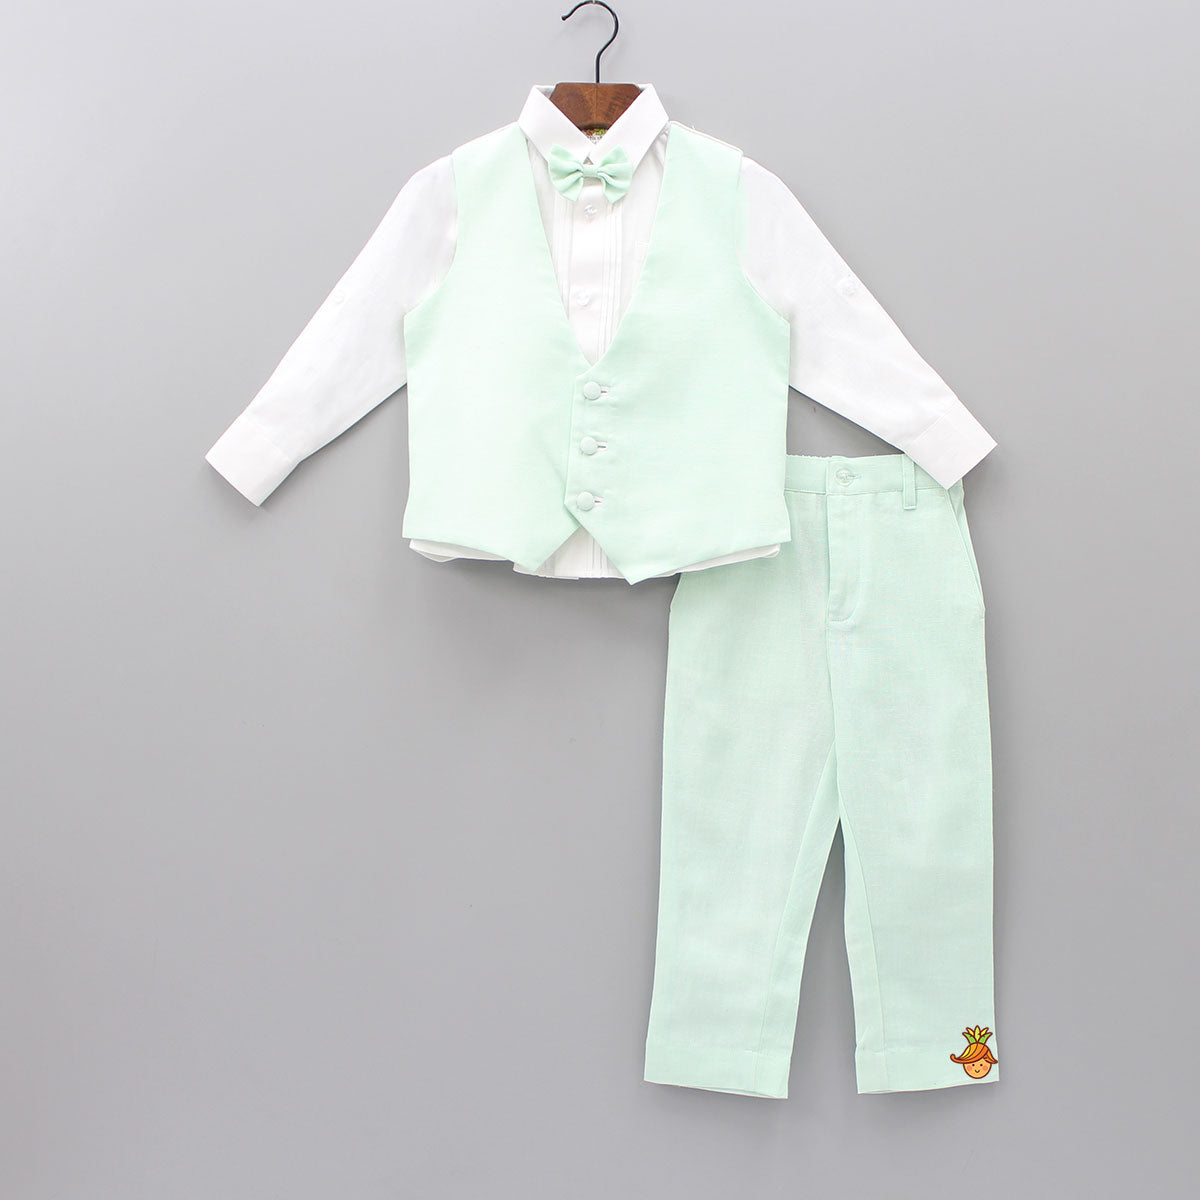 White Shirt And Mint Green Pant With Waistcoat And Bow